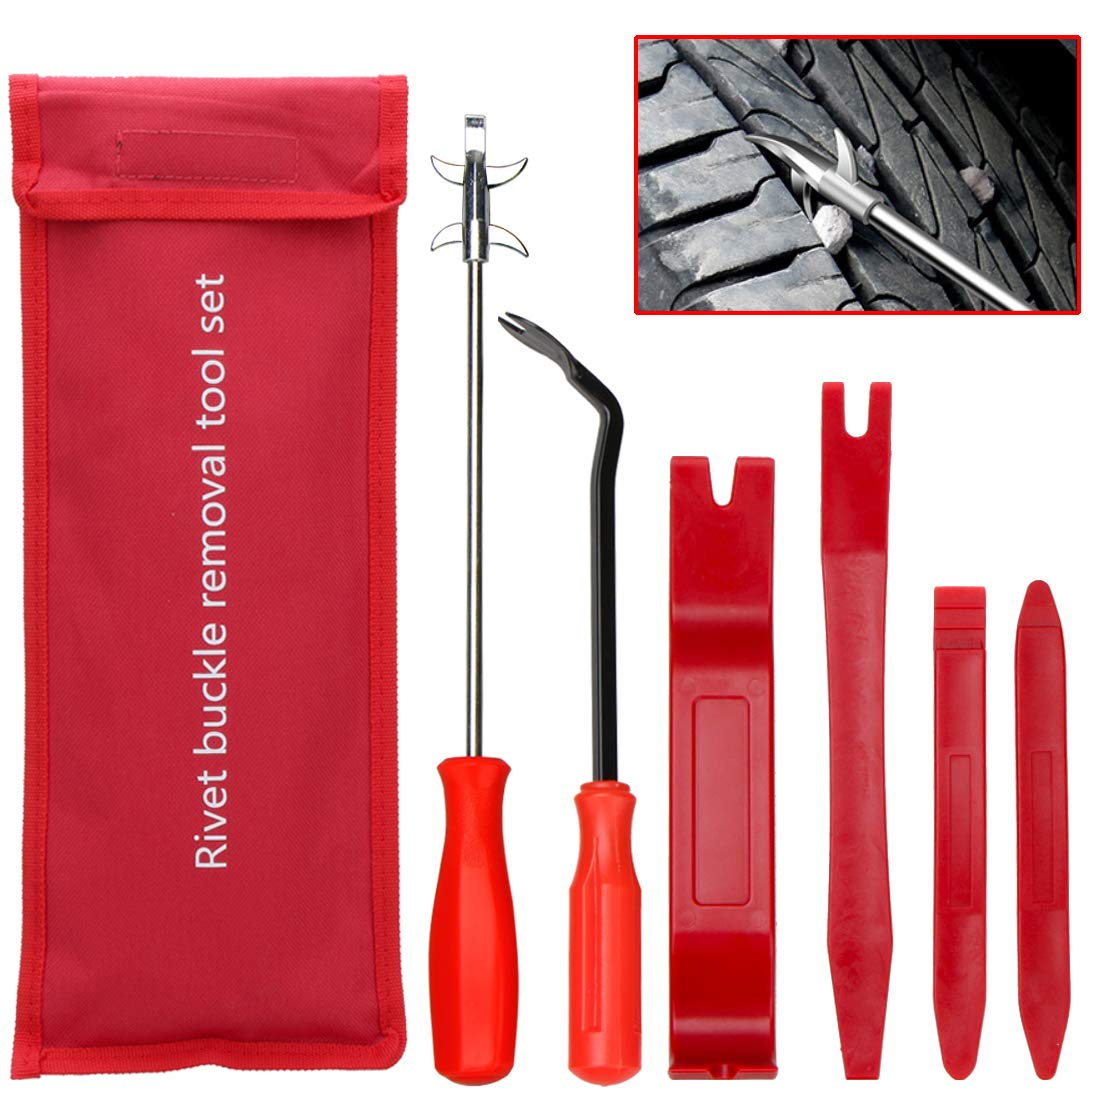 Trim Removal Tool and Tire Cleaning Hook,Car Panel Door Audio Trim Pry Tool Kit, Auto Fastener Remover Tire Stones Removing Tool